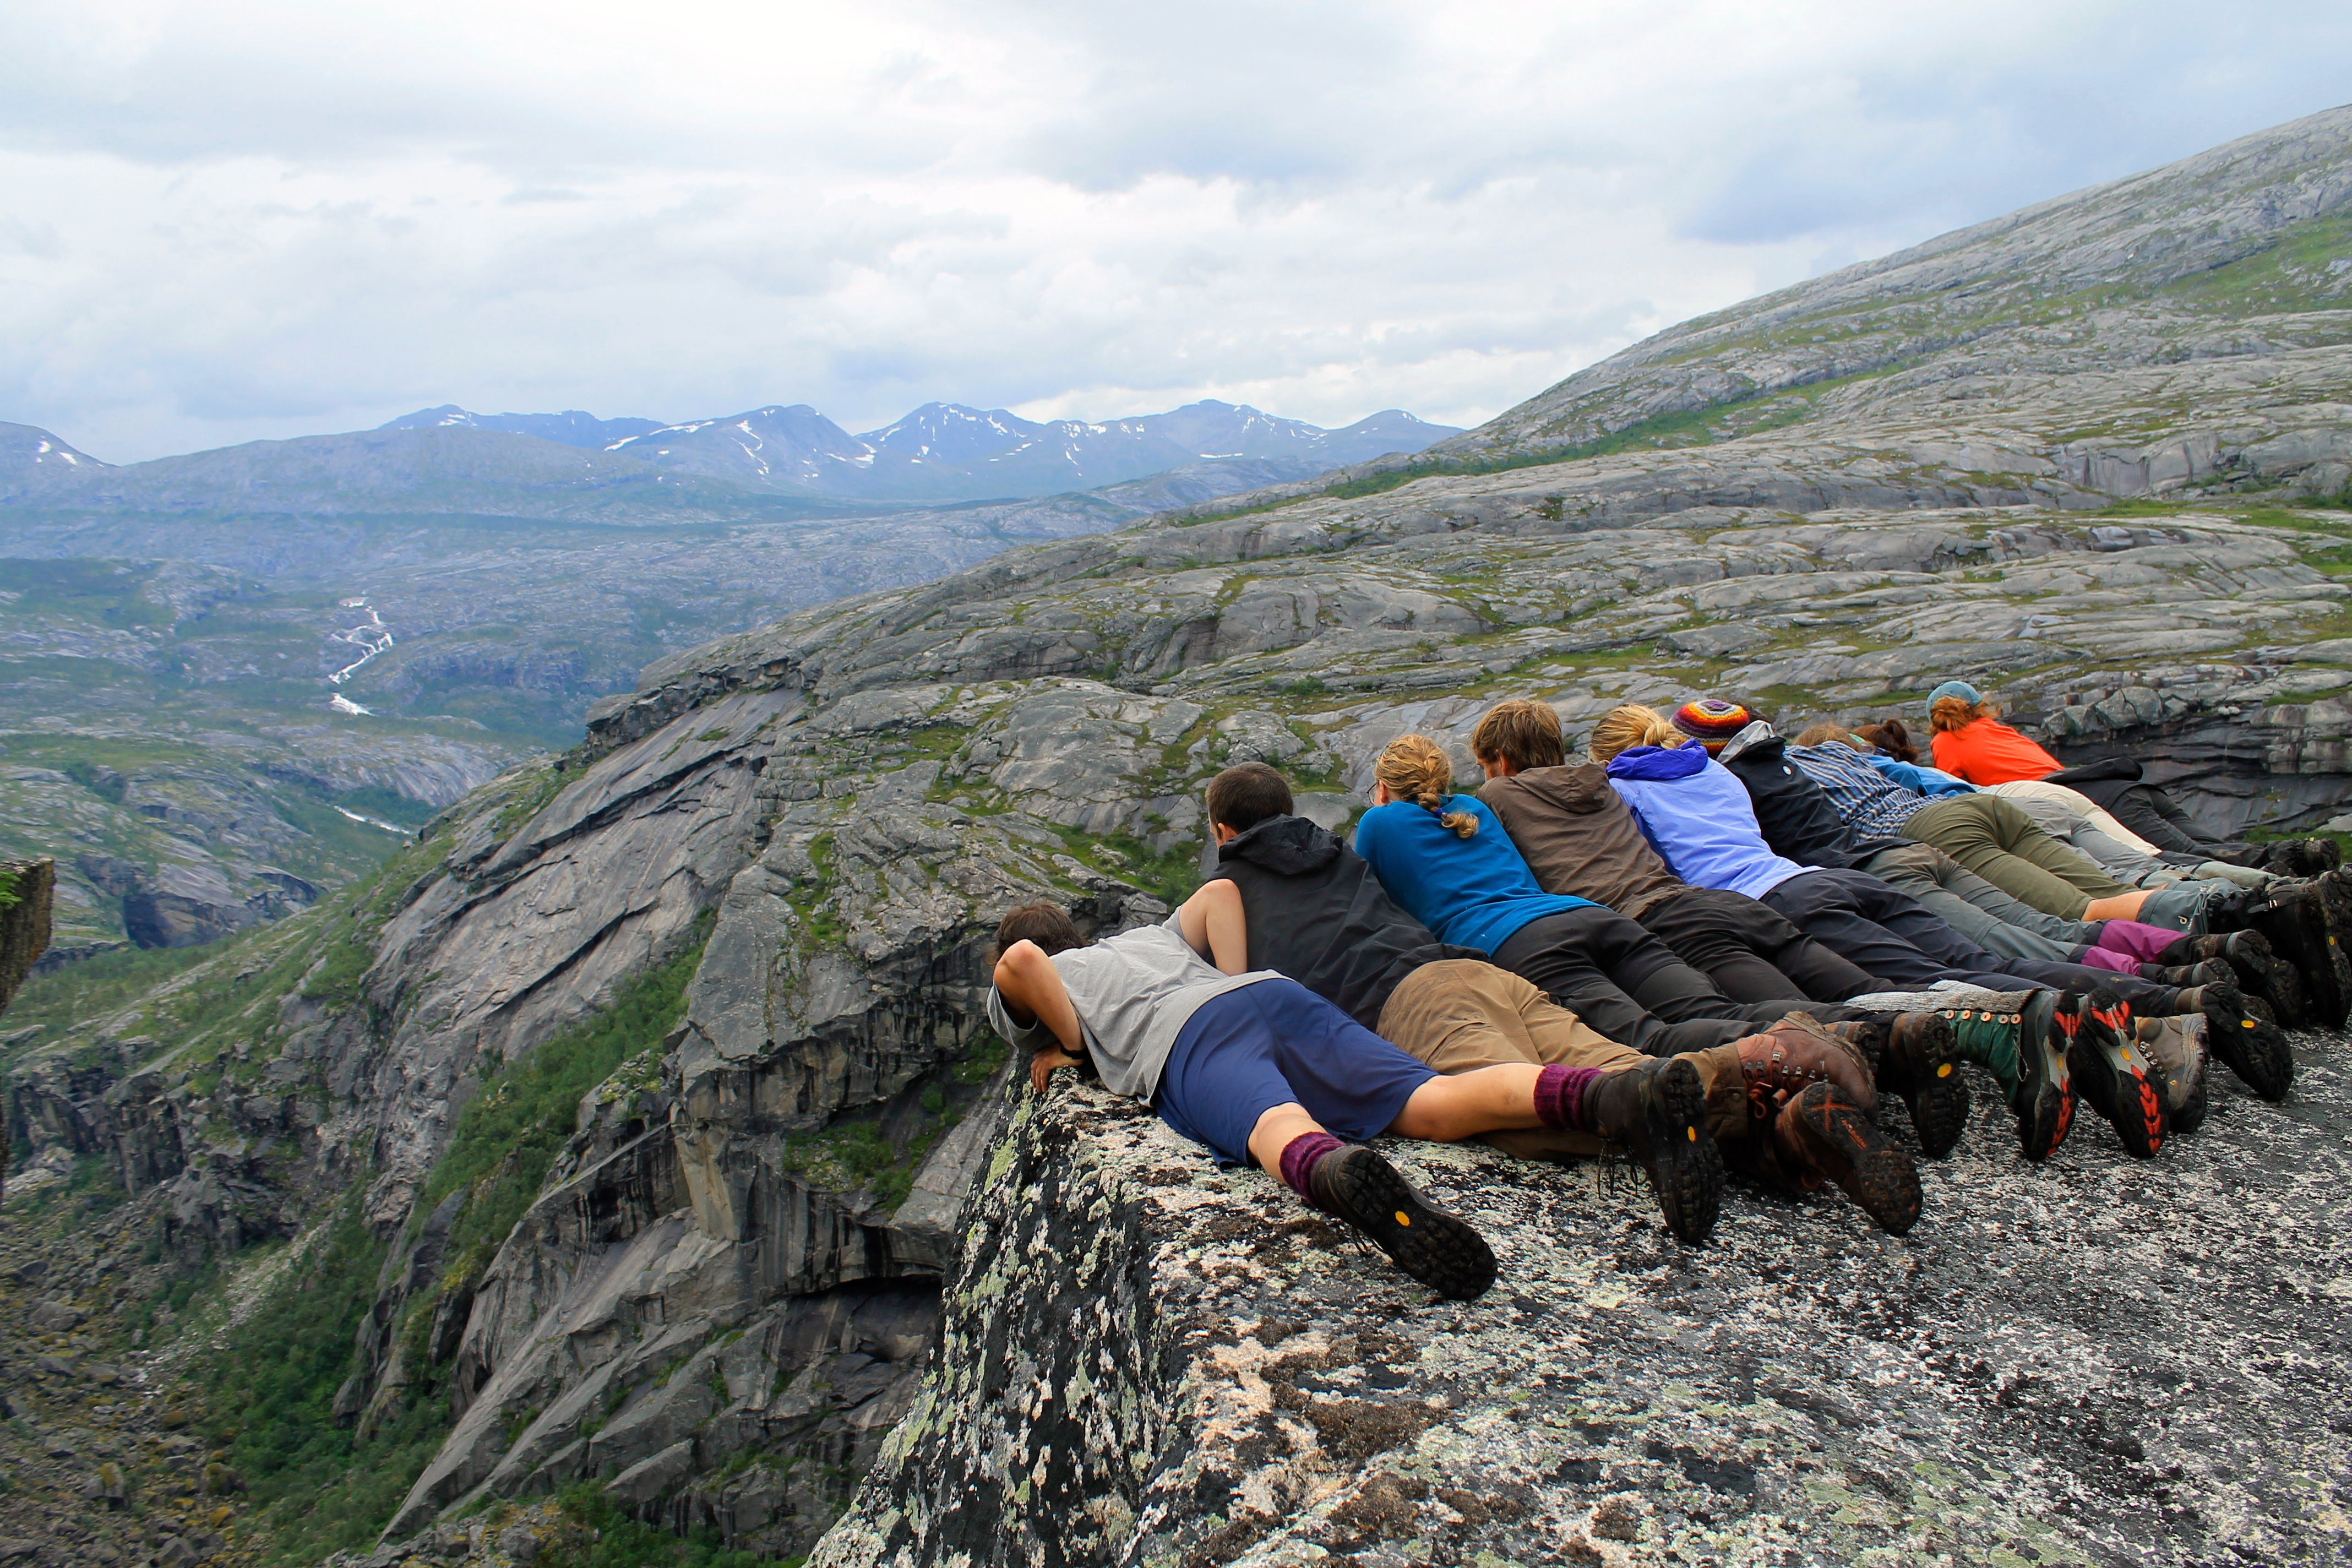 Summer Program - Whitewater Rafting | NOLS Summer Expeditions for Teens